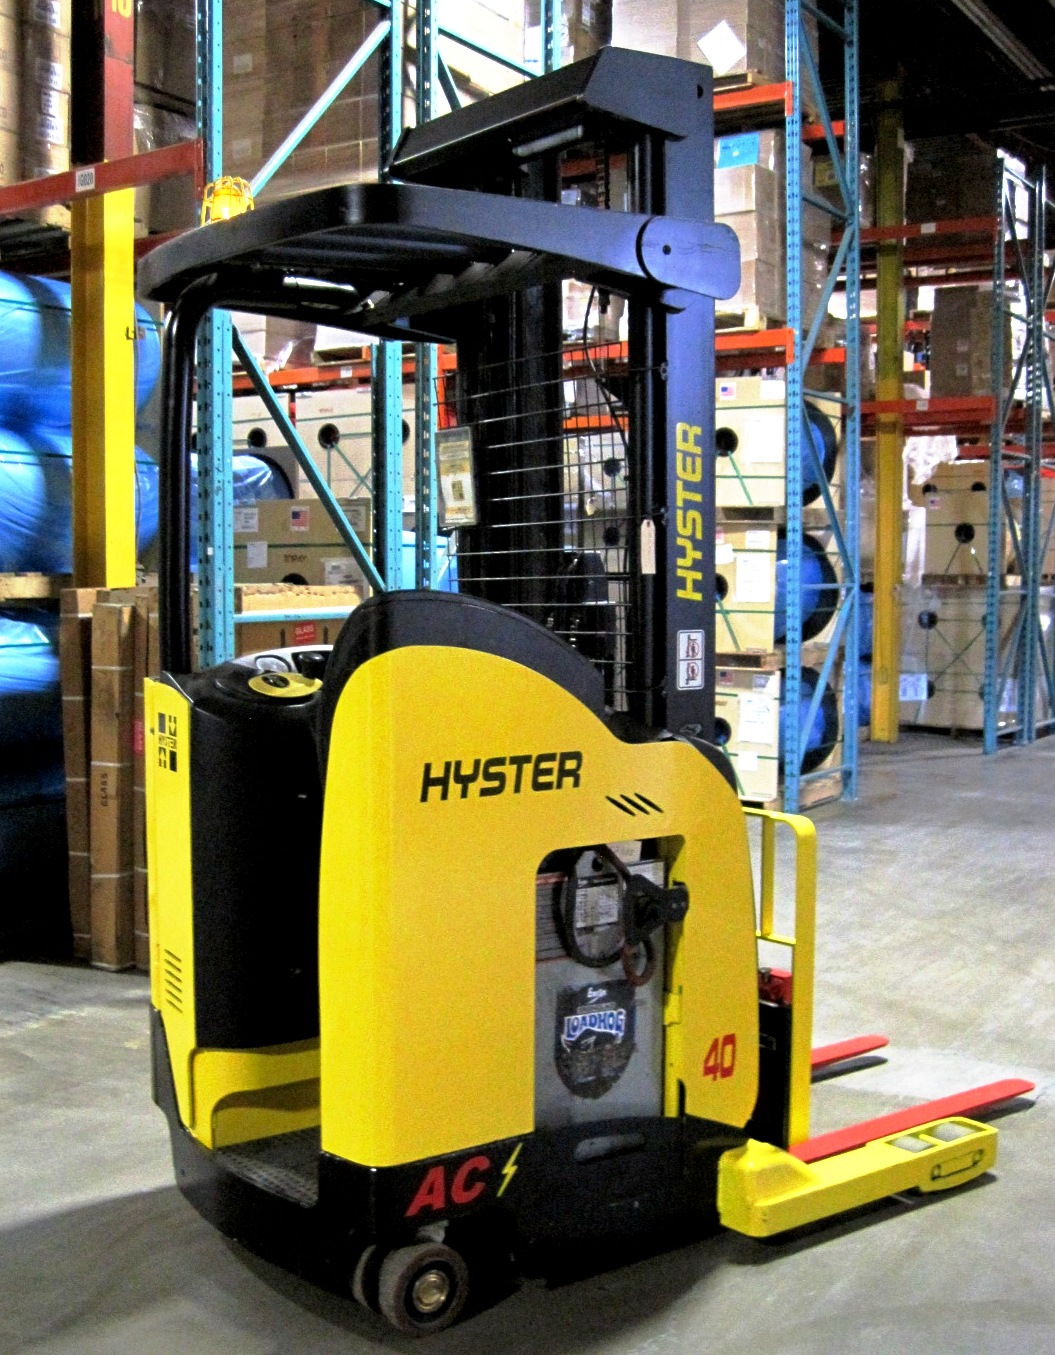 HYSTER REACH FORLIFT